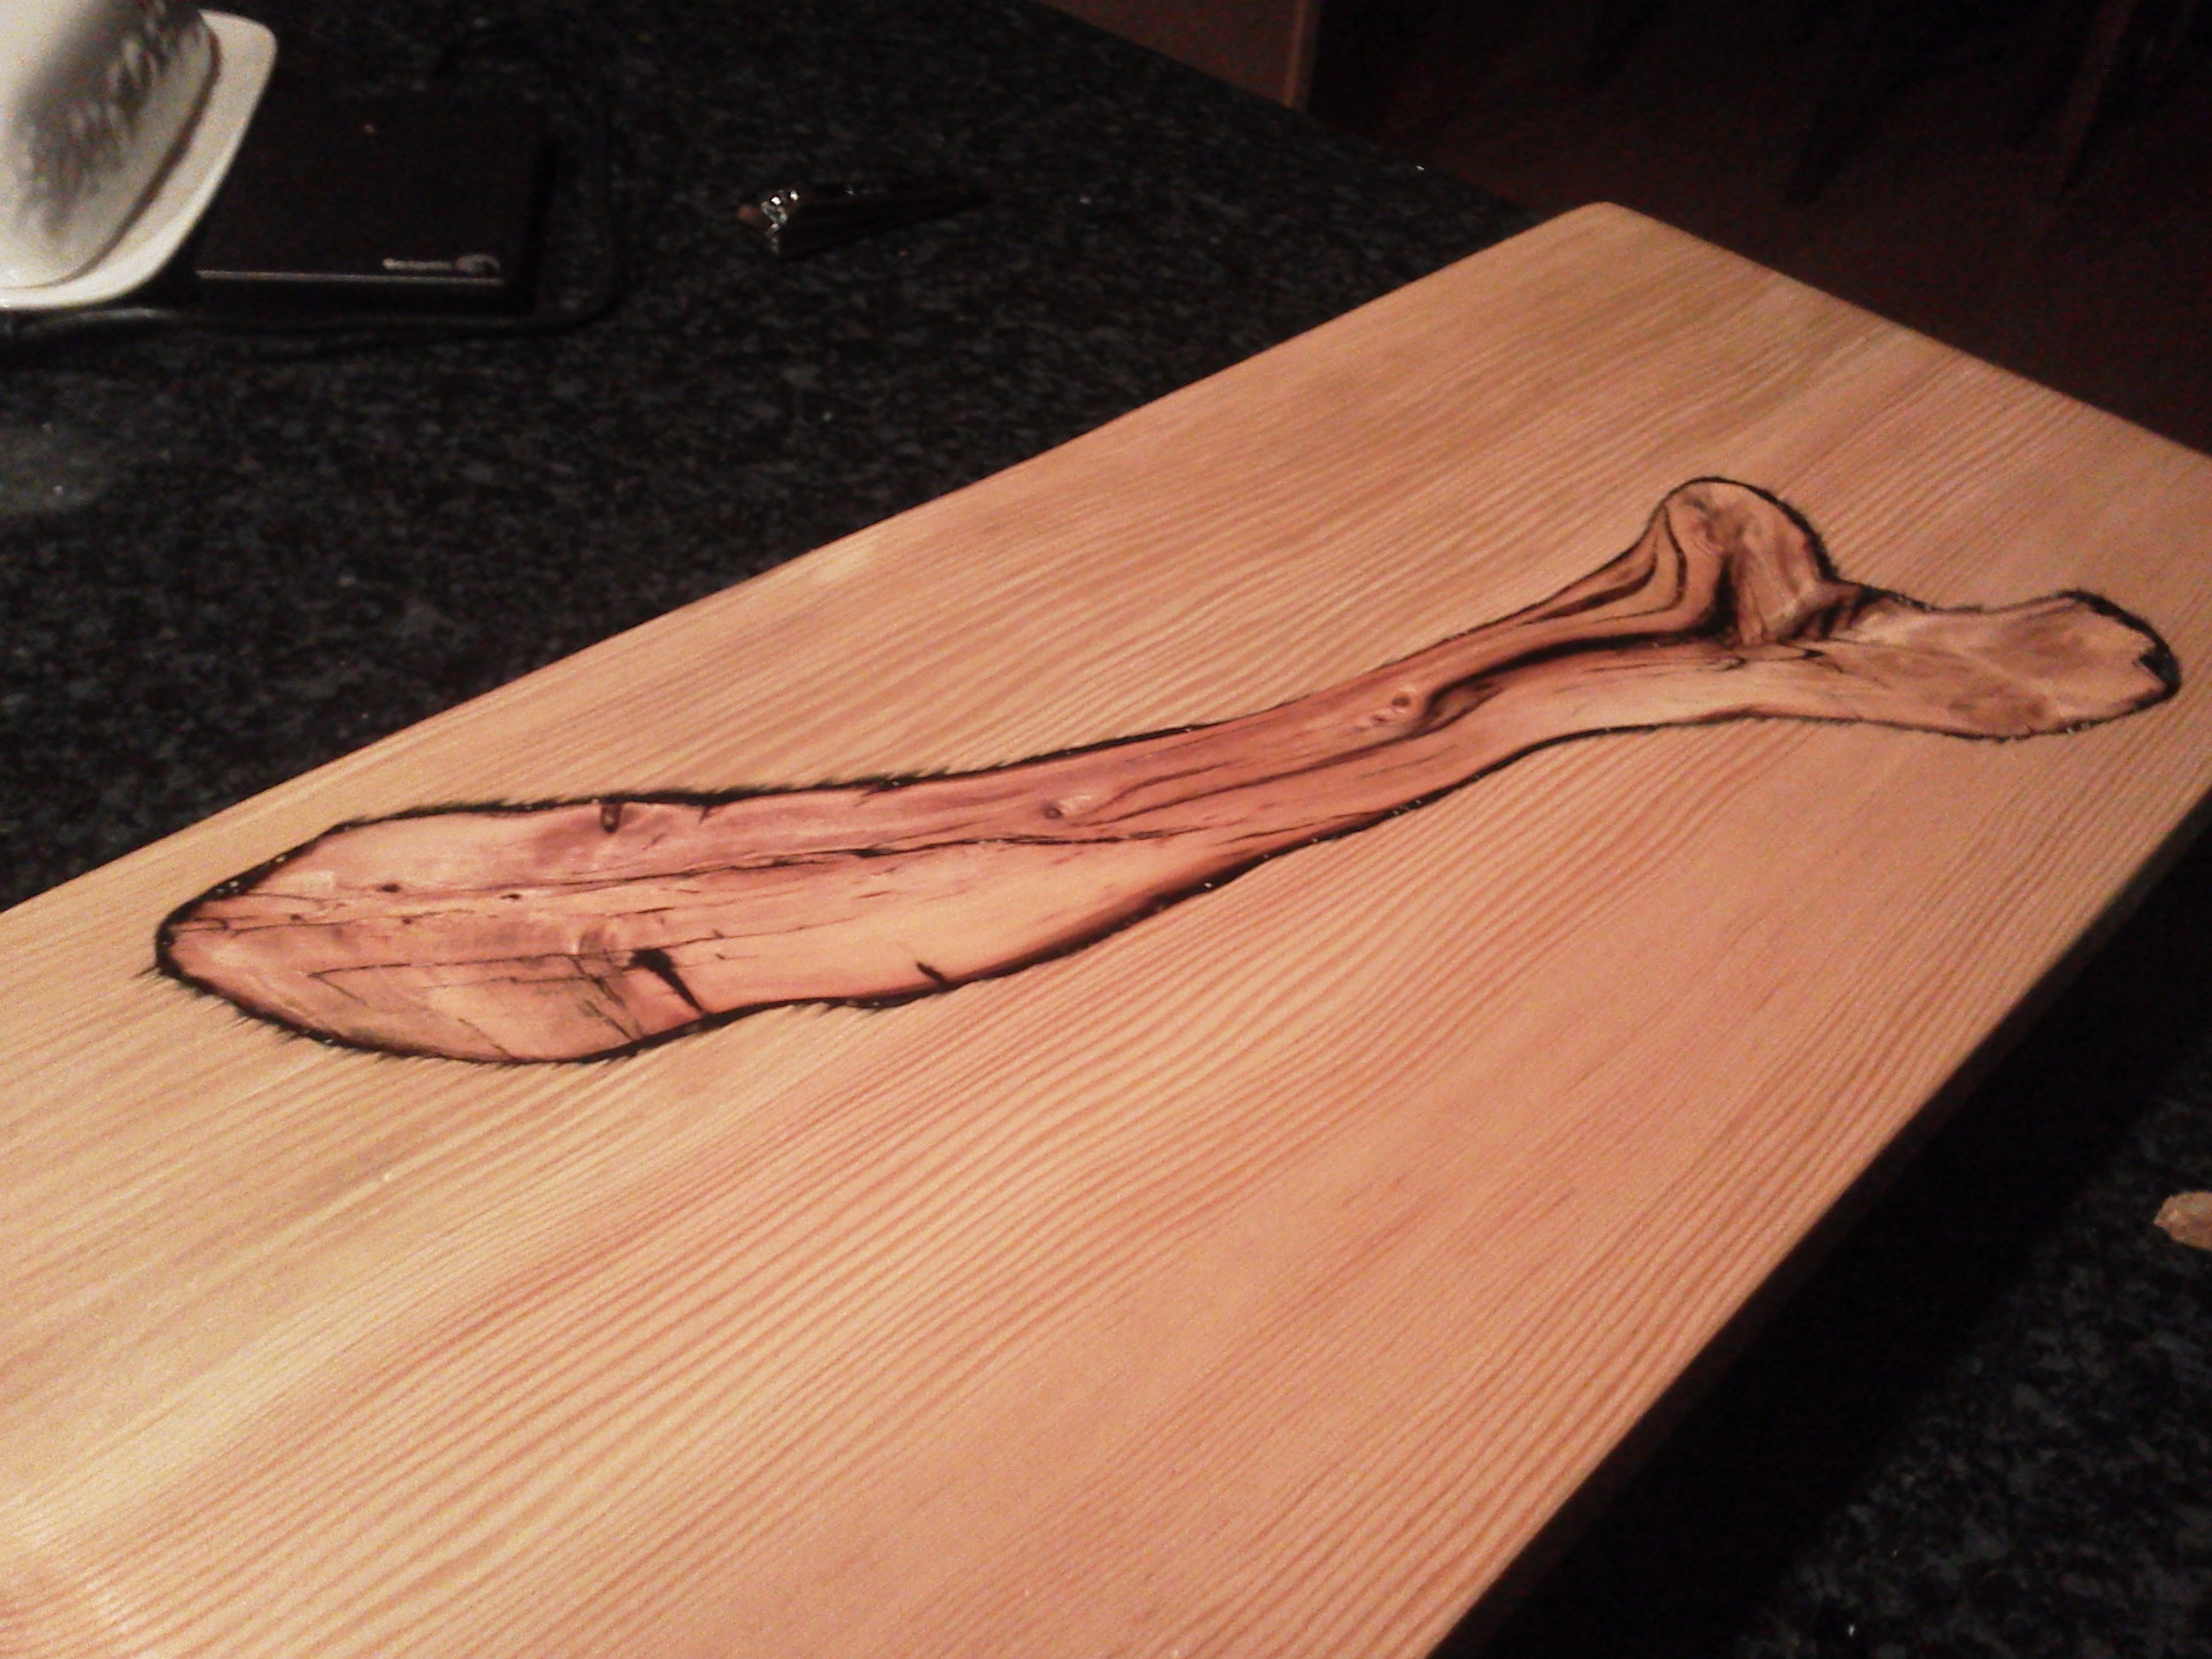 A cutting board I made while experimenting with colored epoxy resins. The inlayed driftwood piece is set in black resin,highlighting and filling the cracks. Next time I have an idea to stop the color bleeding!